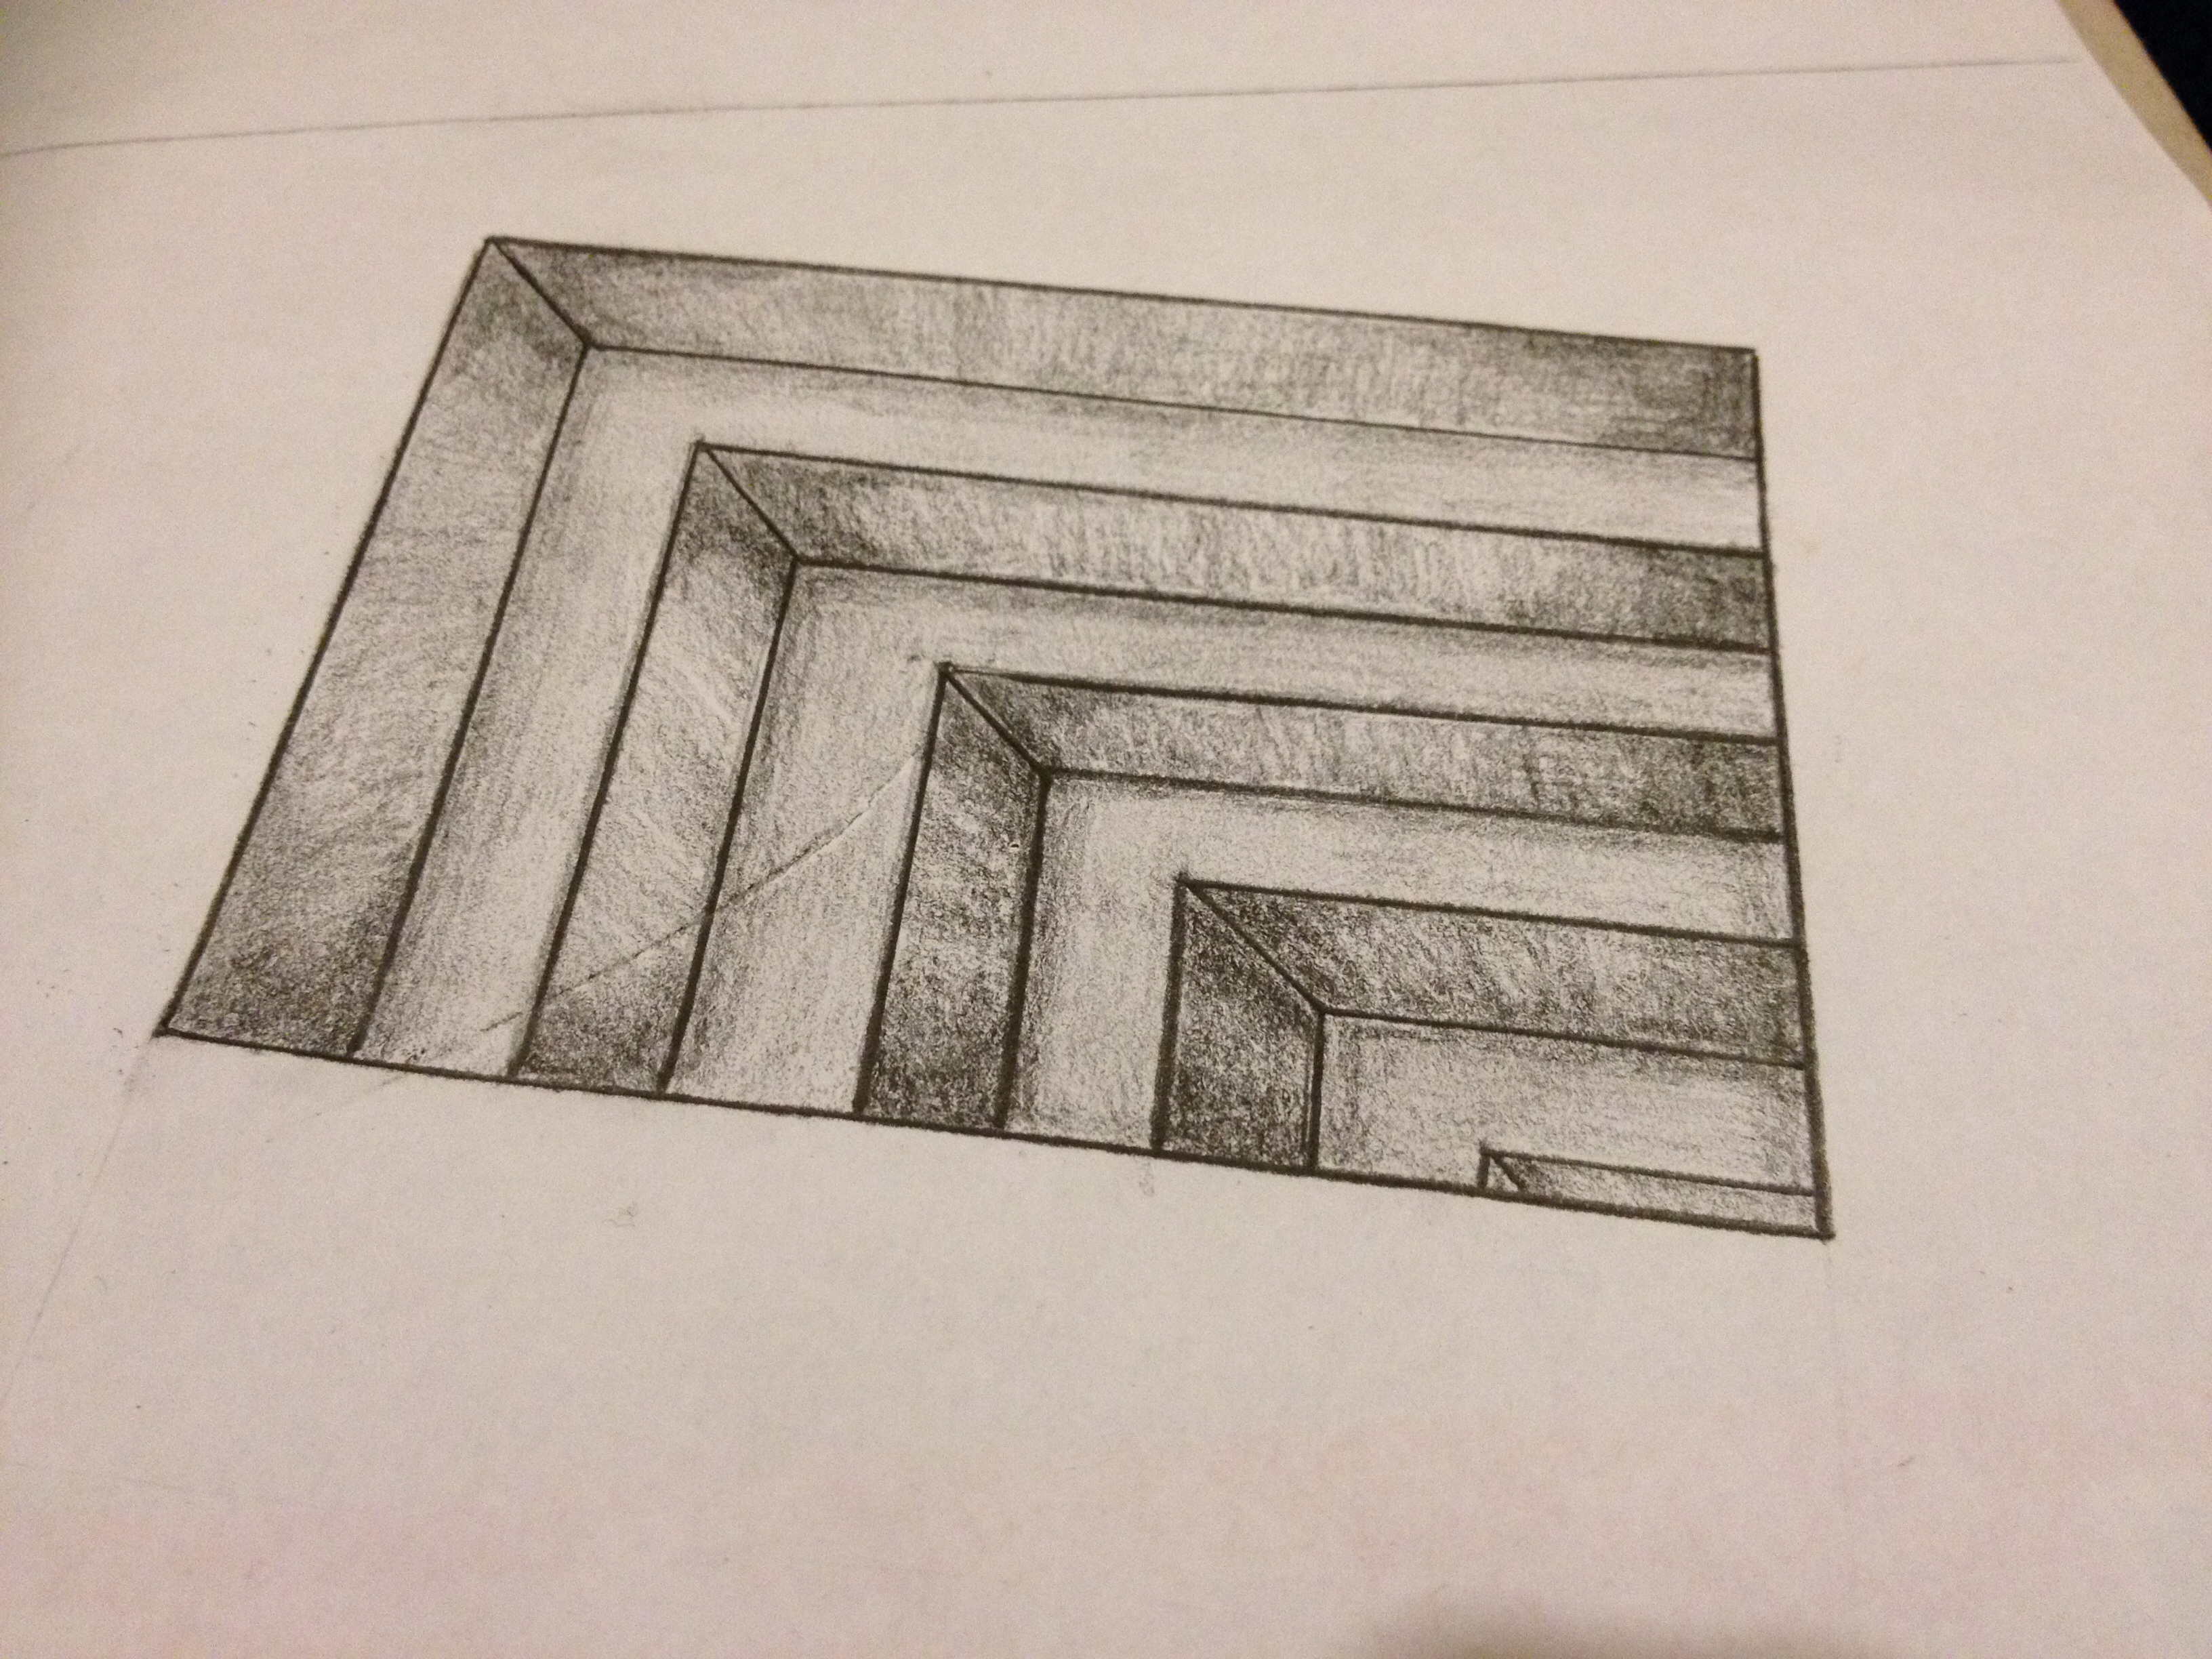 What are the essentials of making cool drawings?